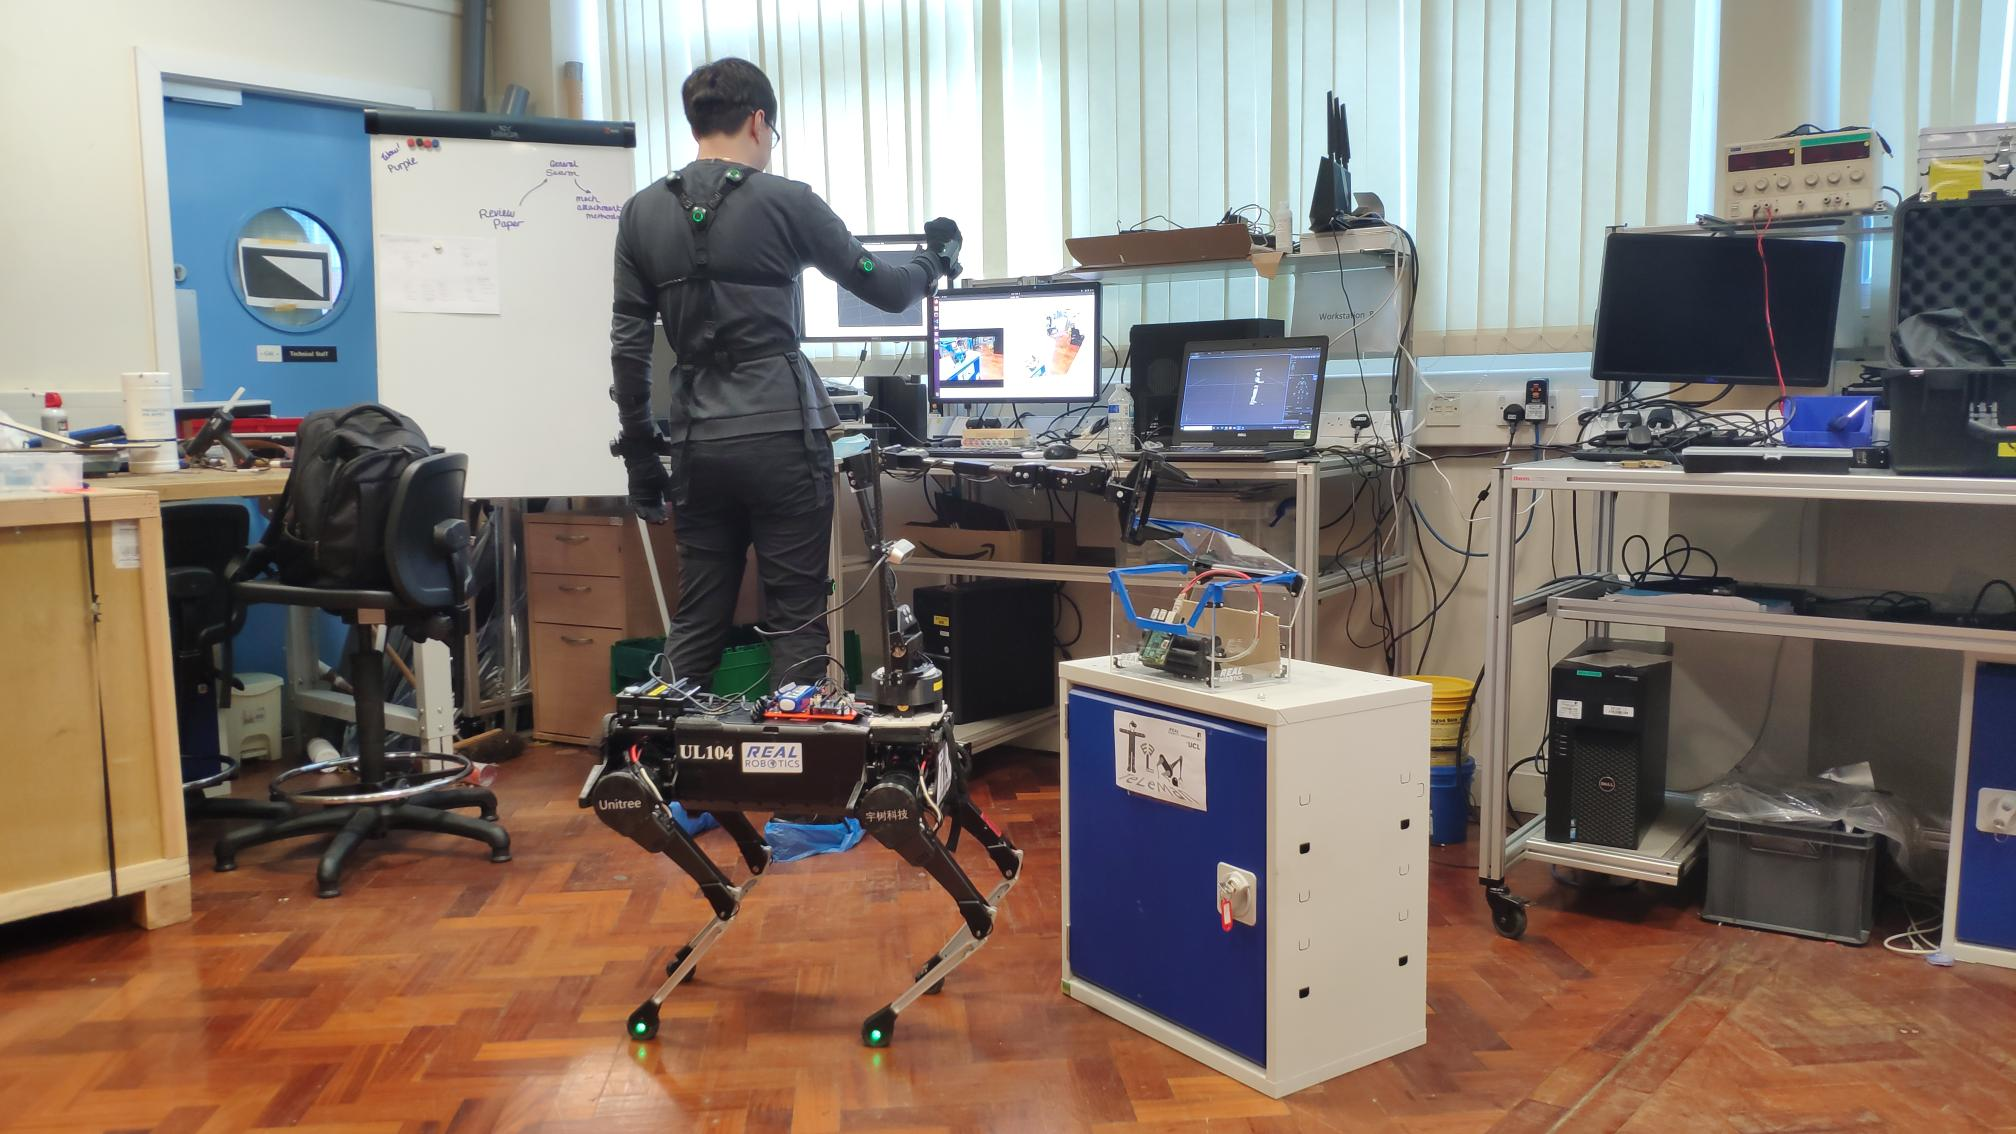 First demonstrations in the Real Robotics lab